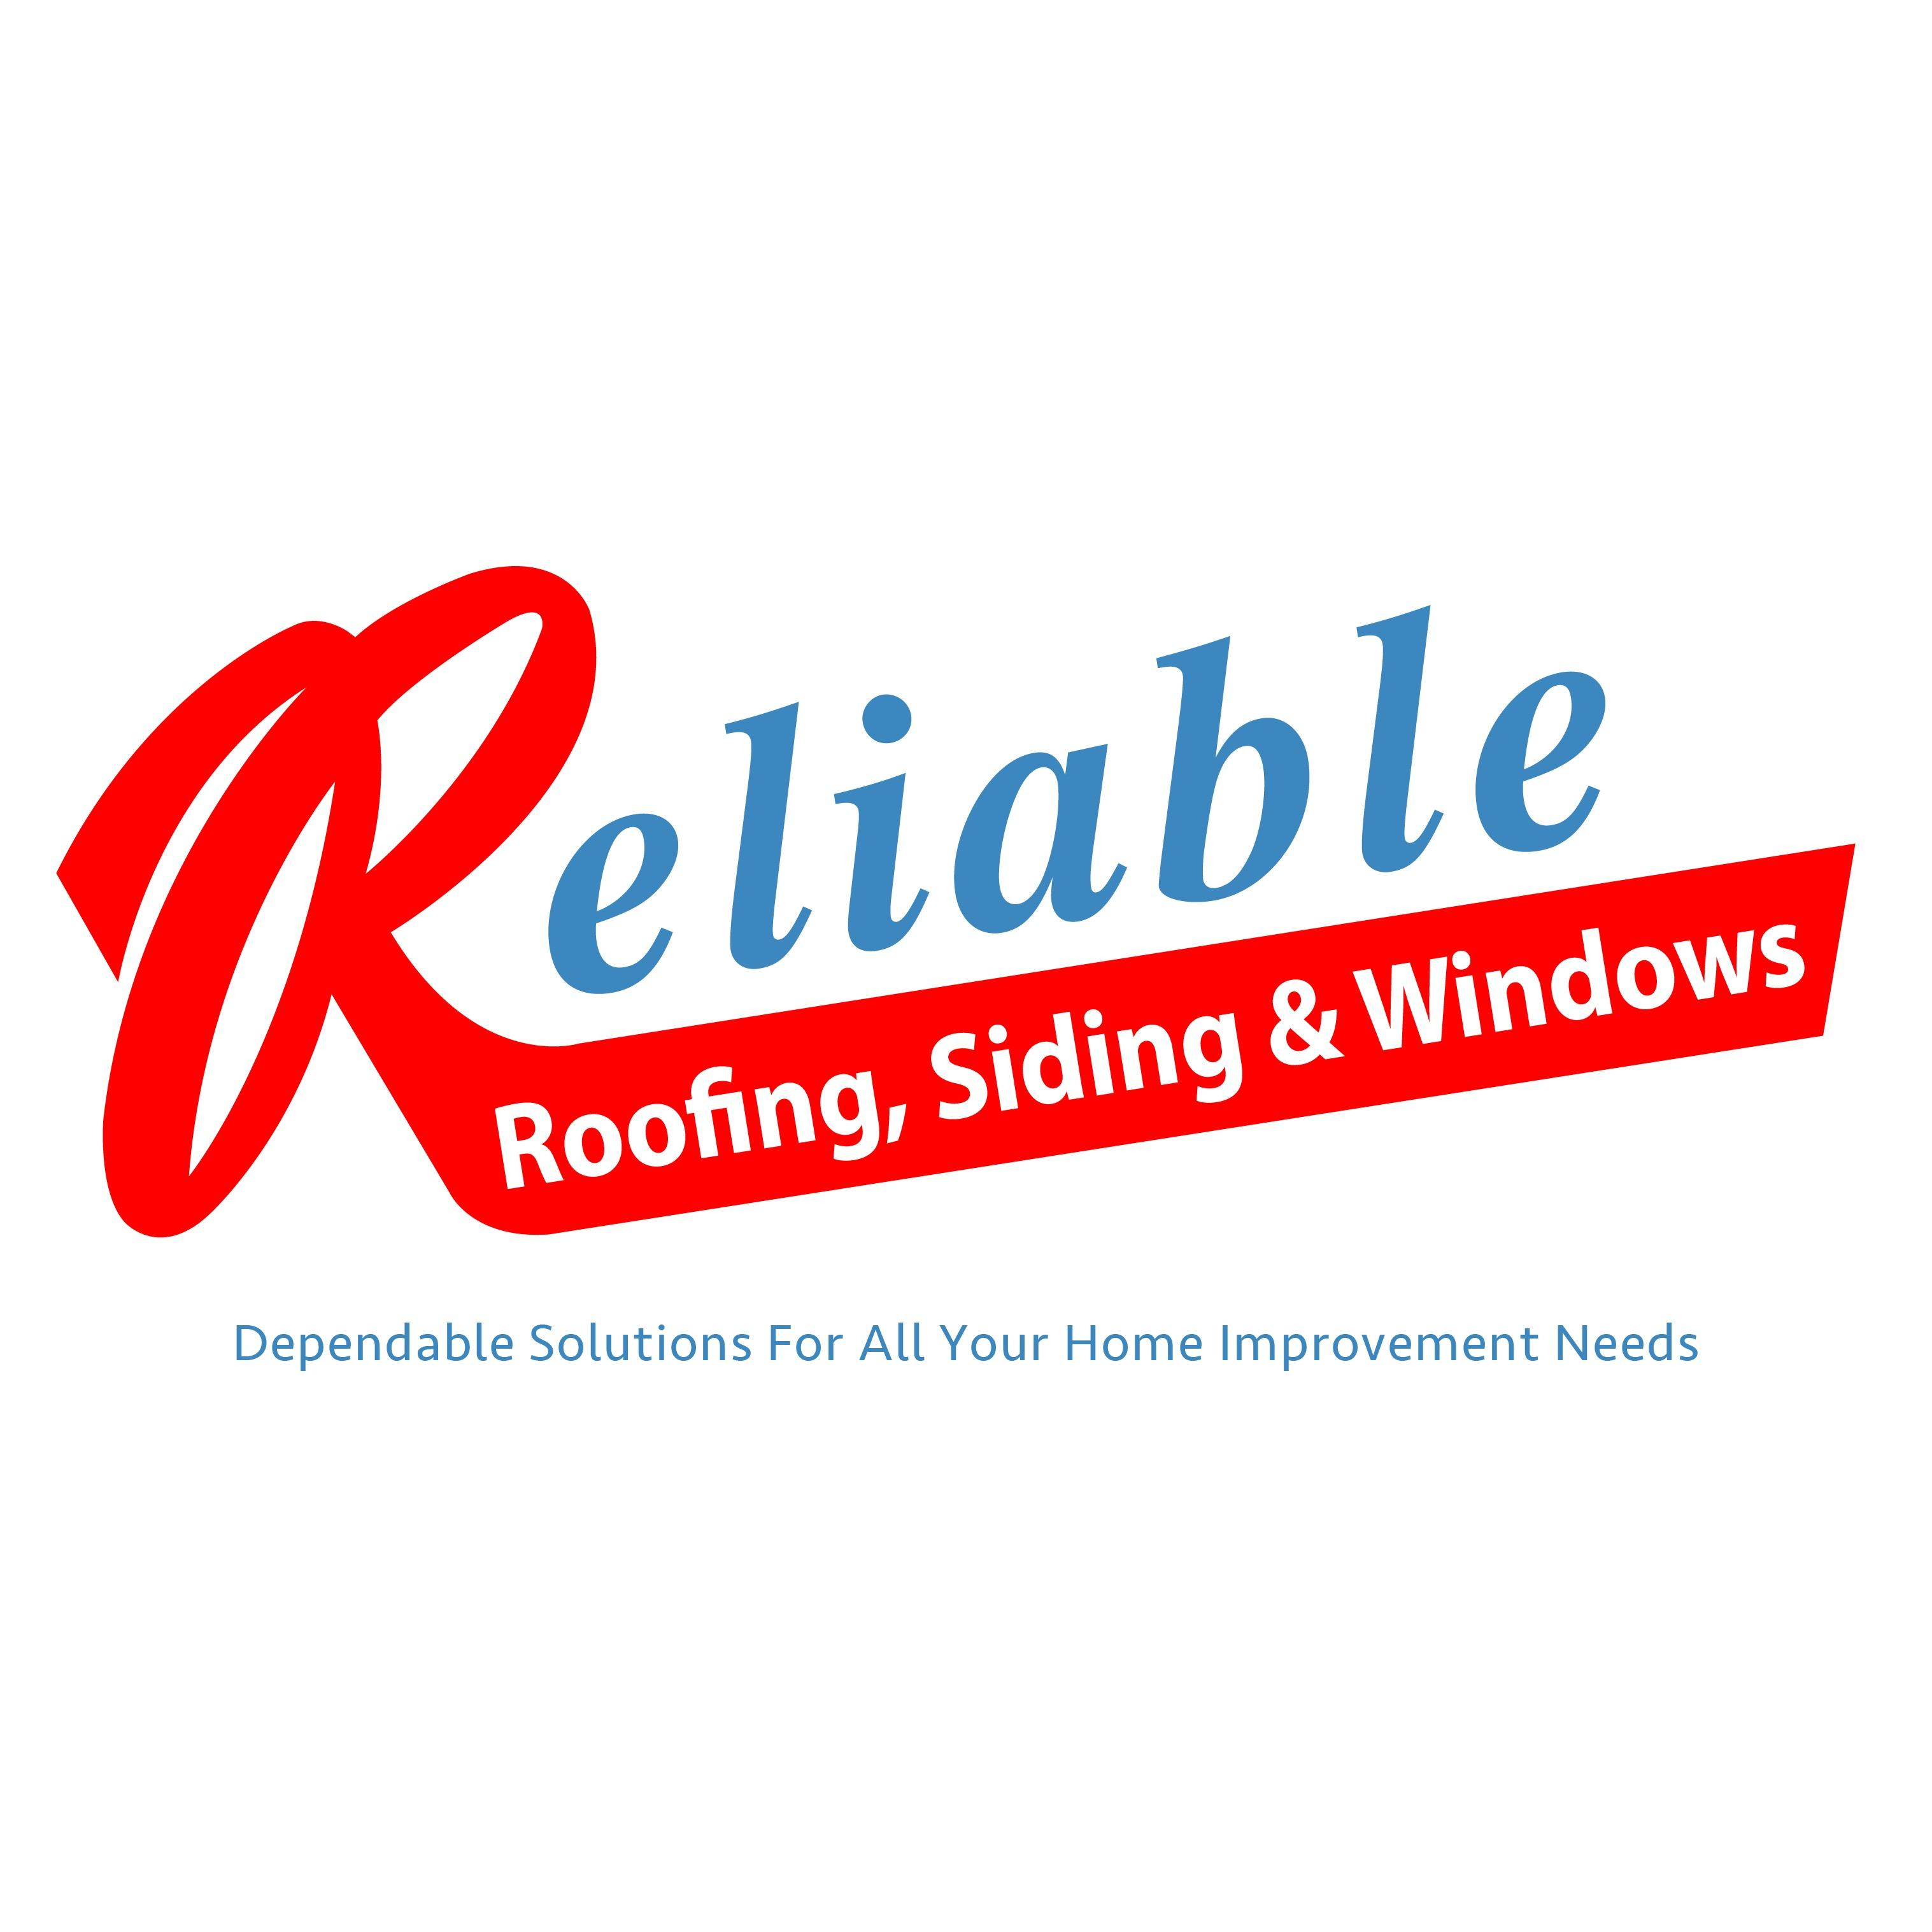 Reliable Roofing, Siding, and Windows image 25